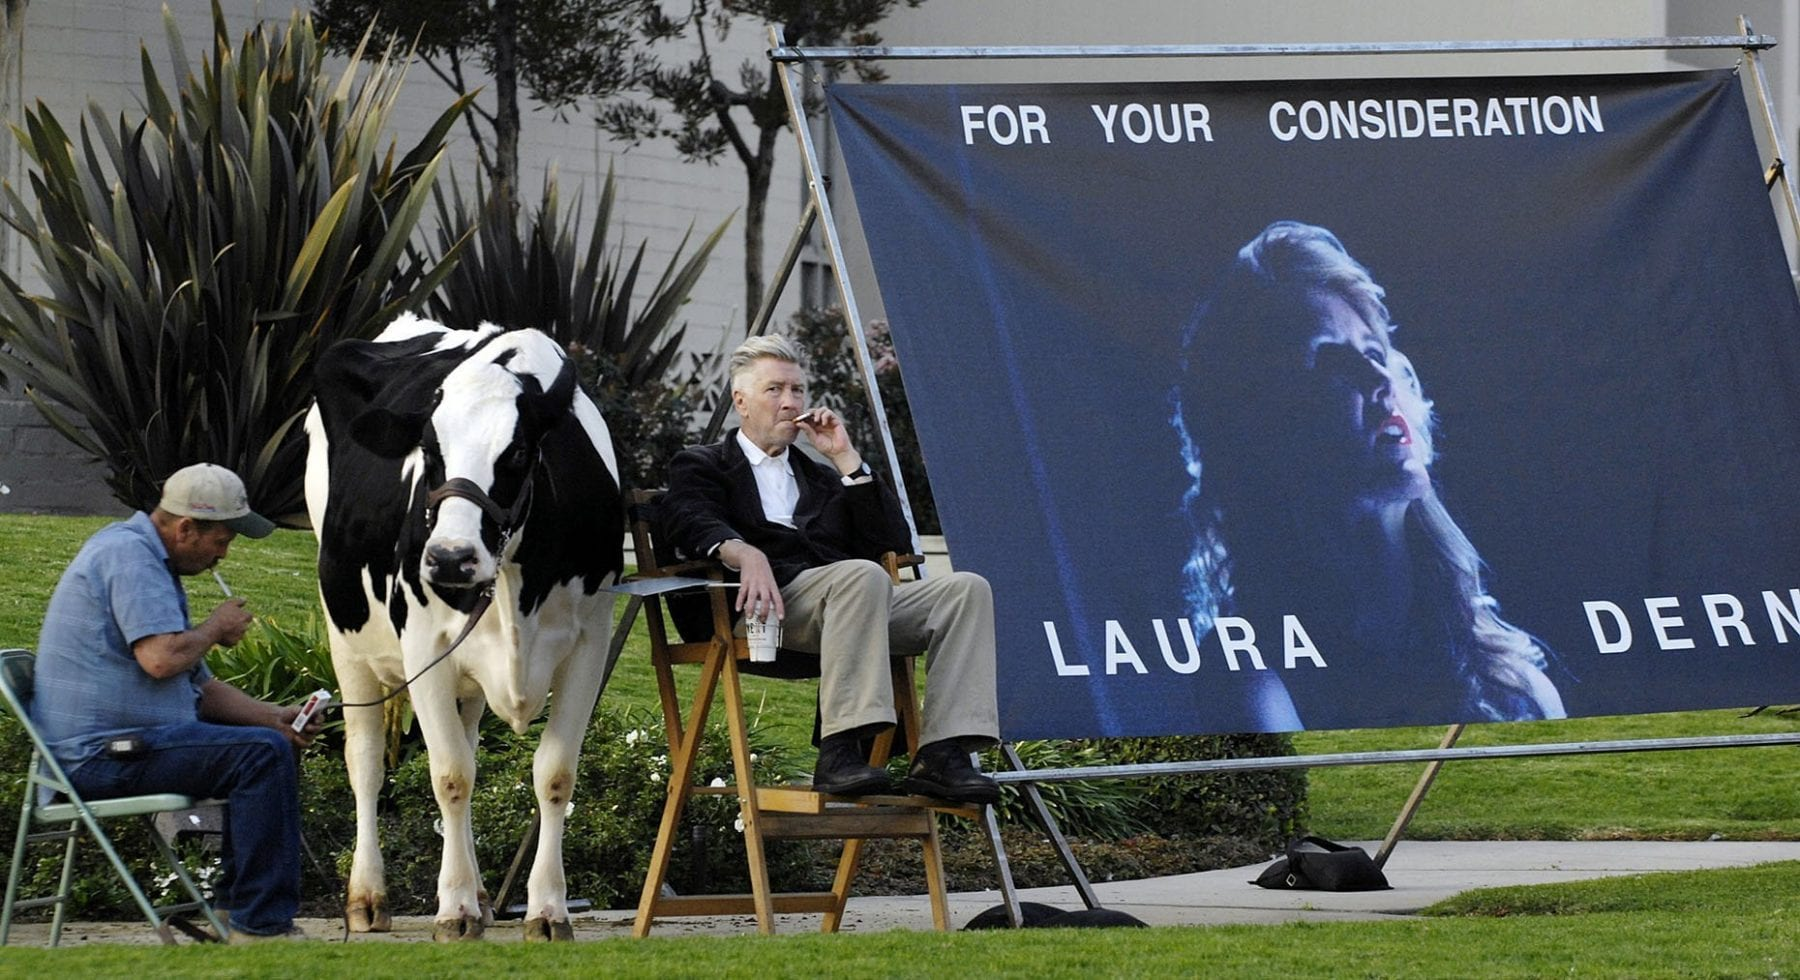 David Lycnh campaigns for Laura Dern with a cow